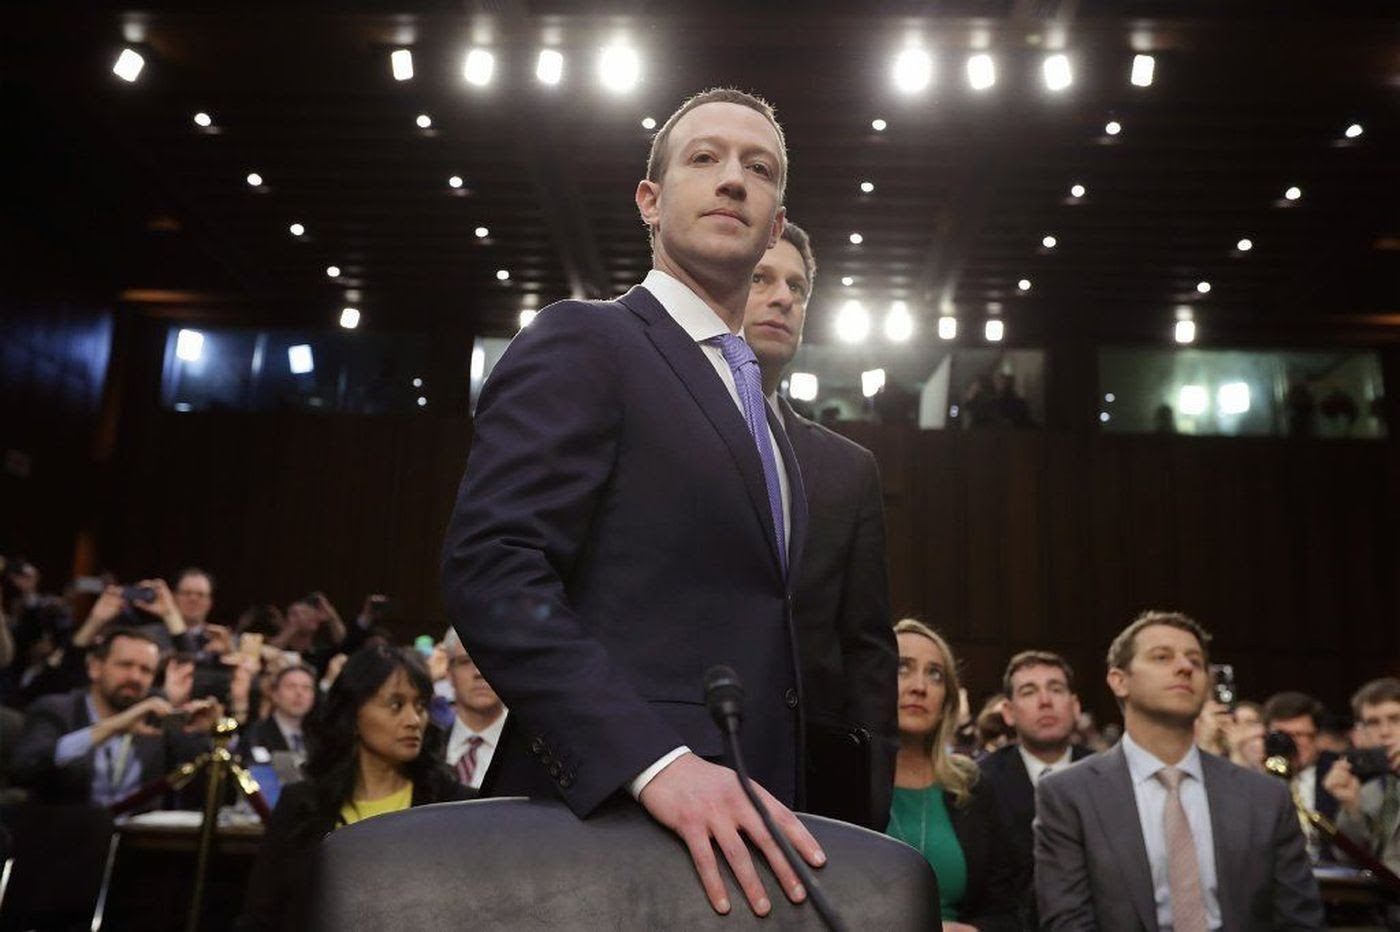 Zuckerberg's Holocaust comment puts Facebook on the spot